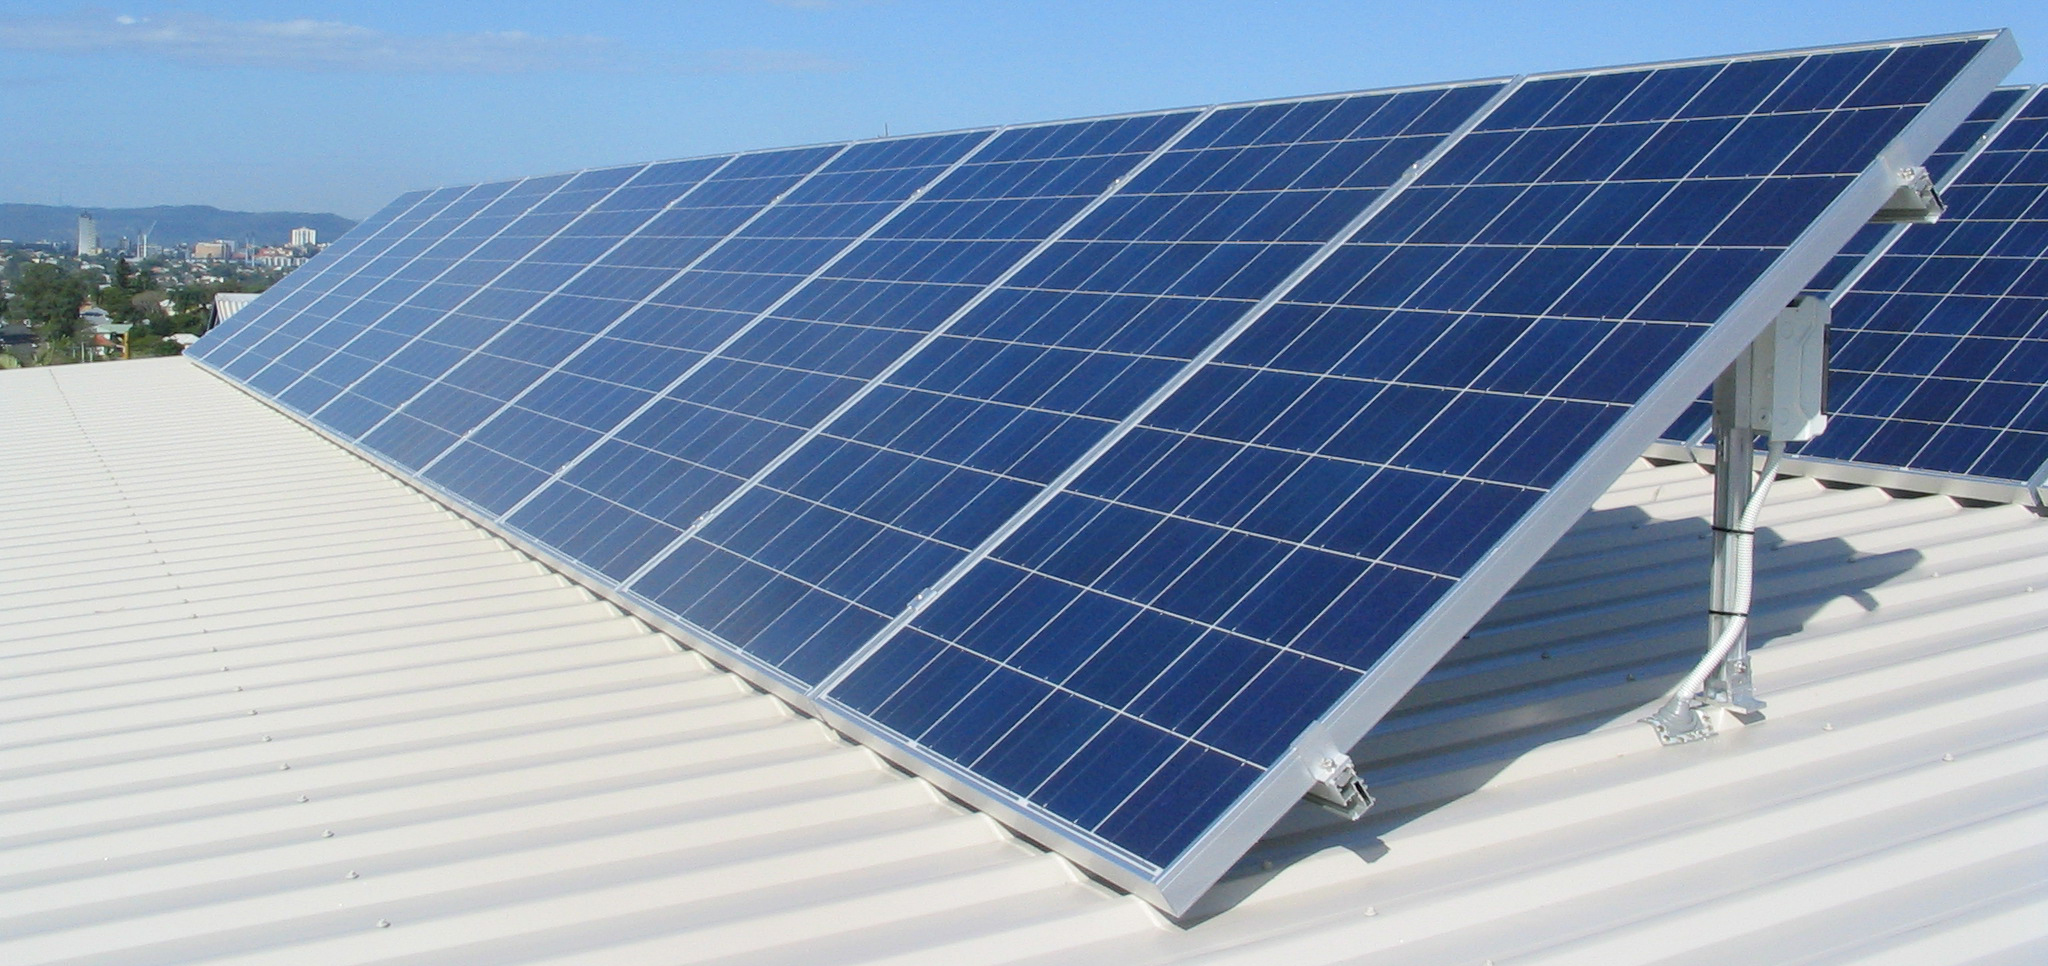 Commercial Solar Power Systems: Are They Durable or Fragile?